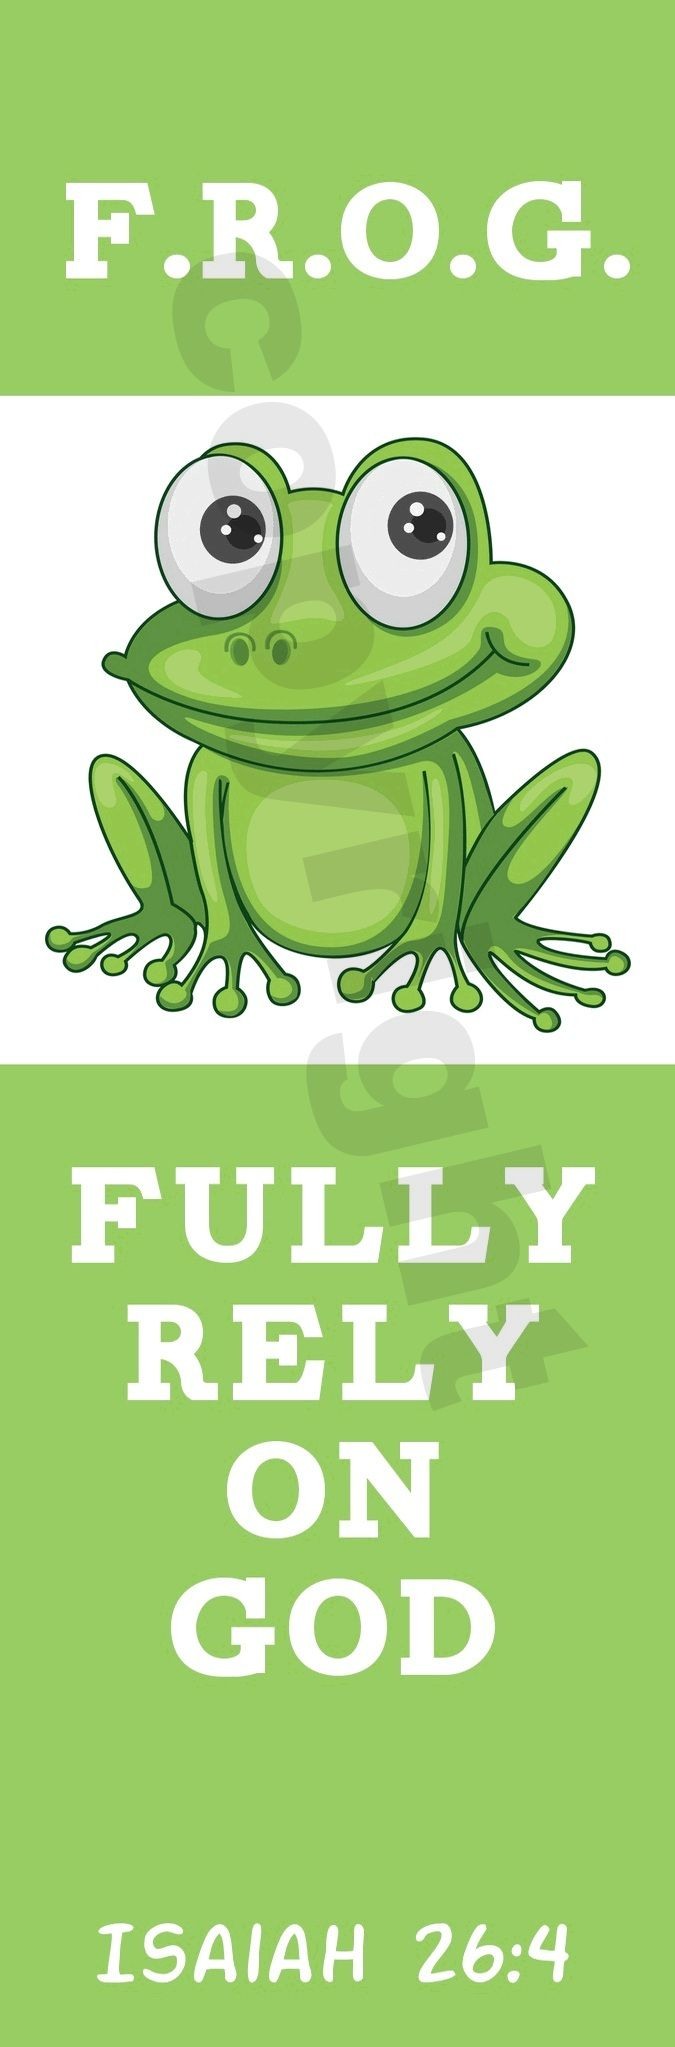 new fully rely on god f r o g bookmark froggy friends